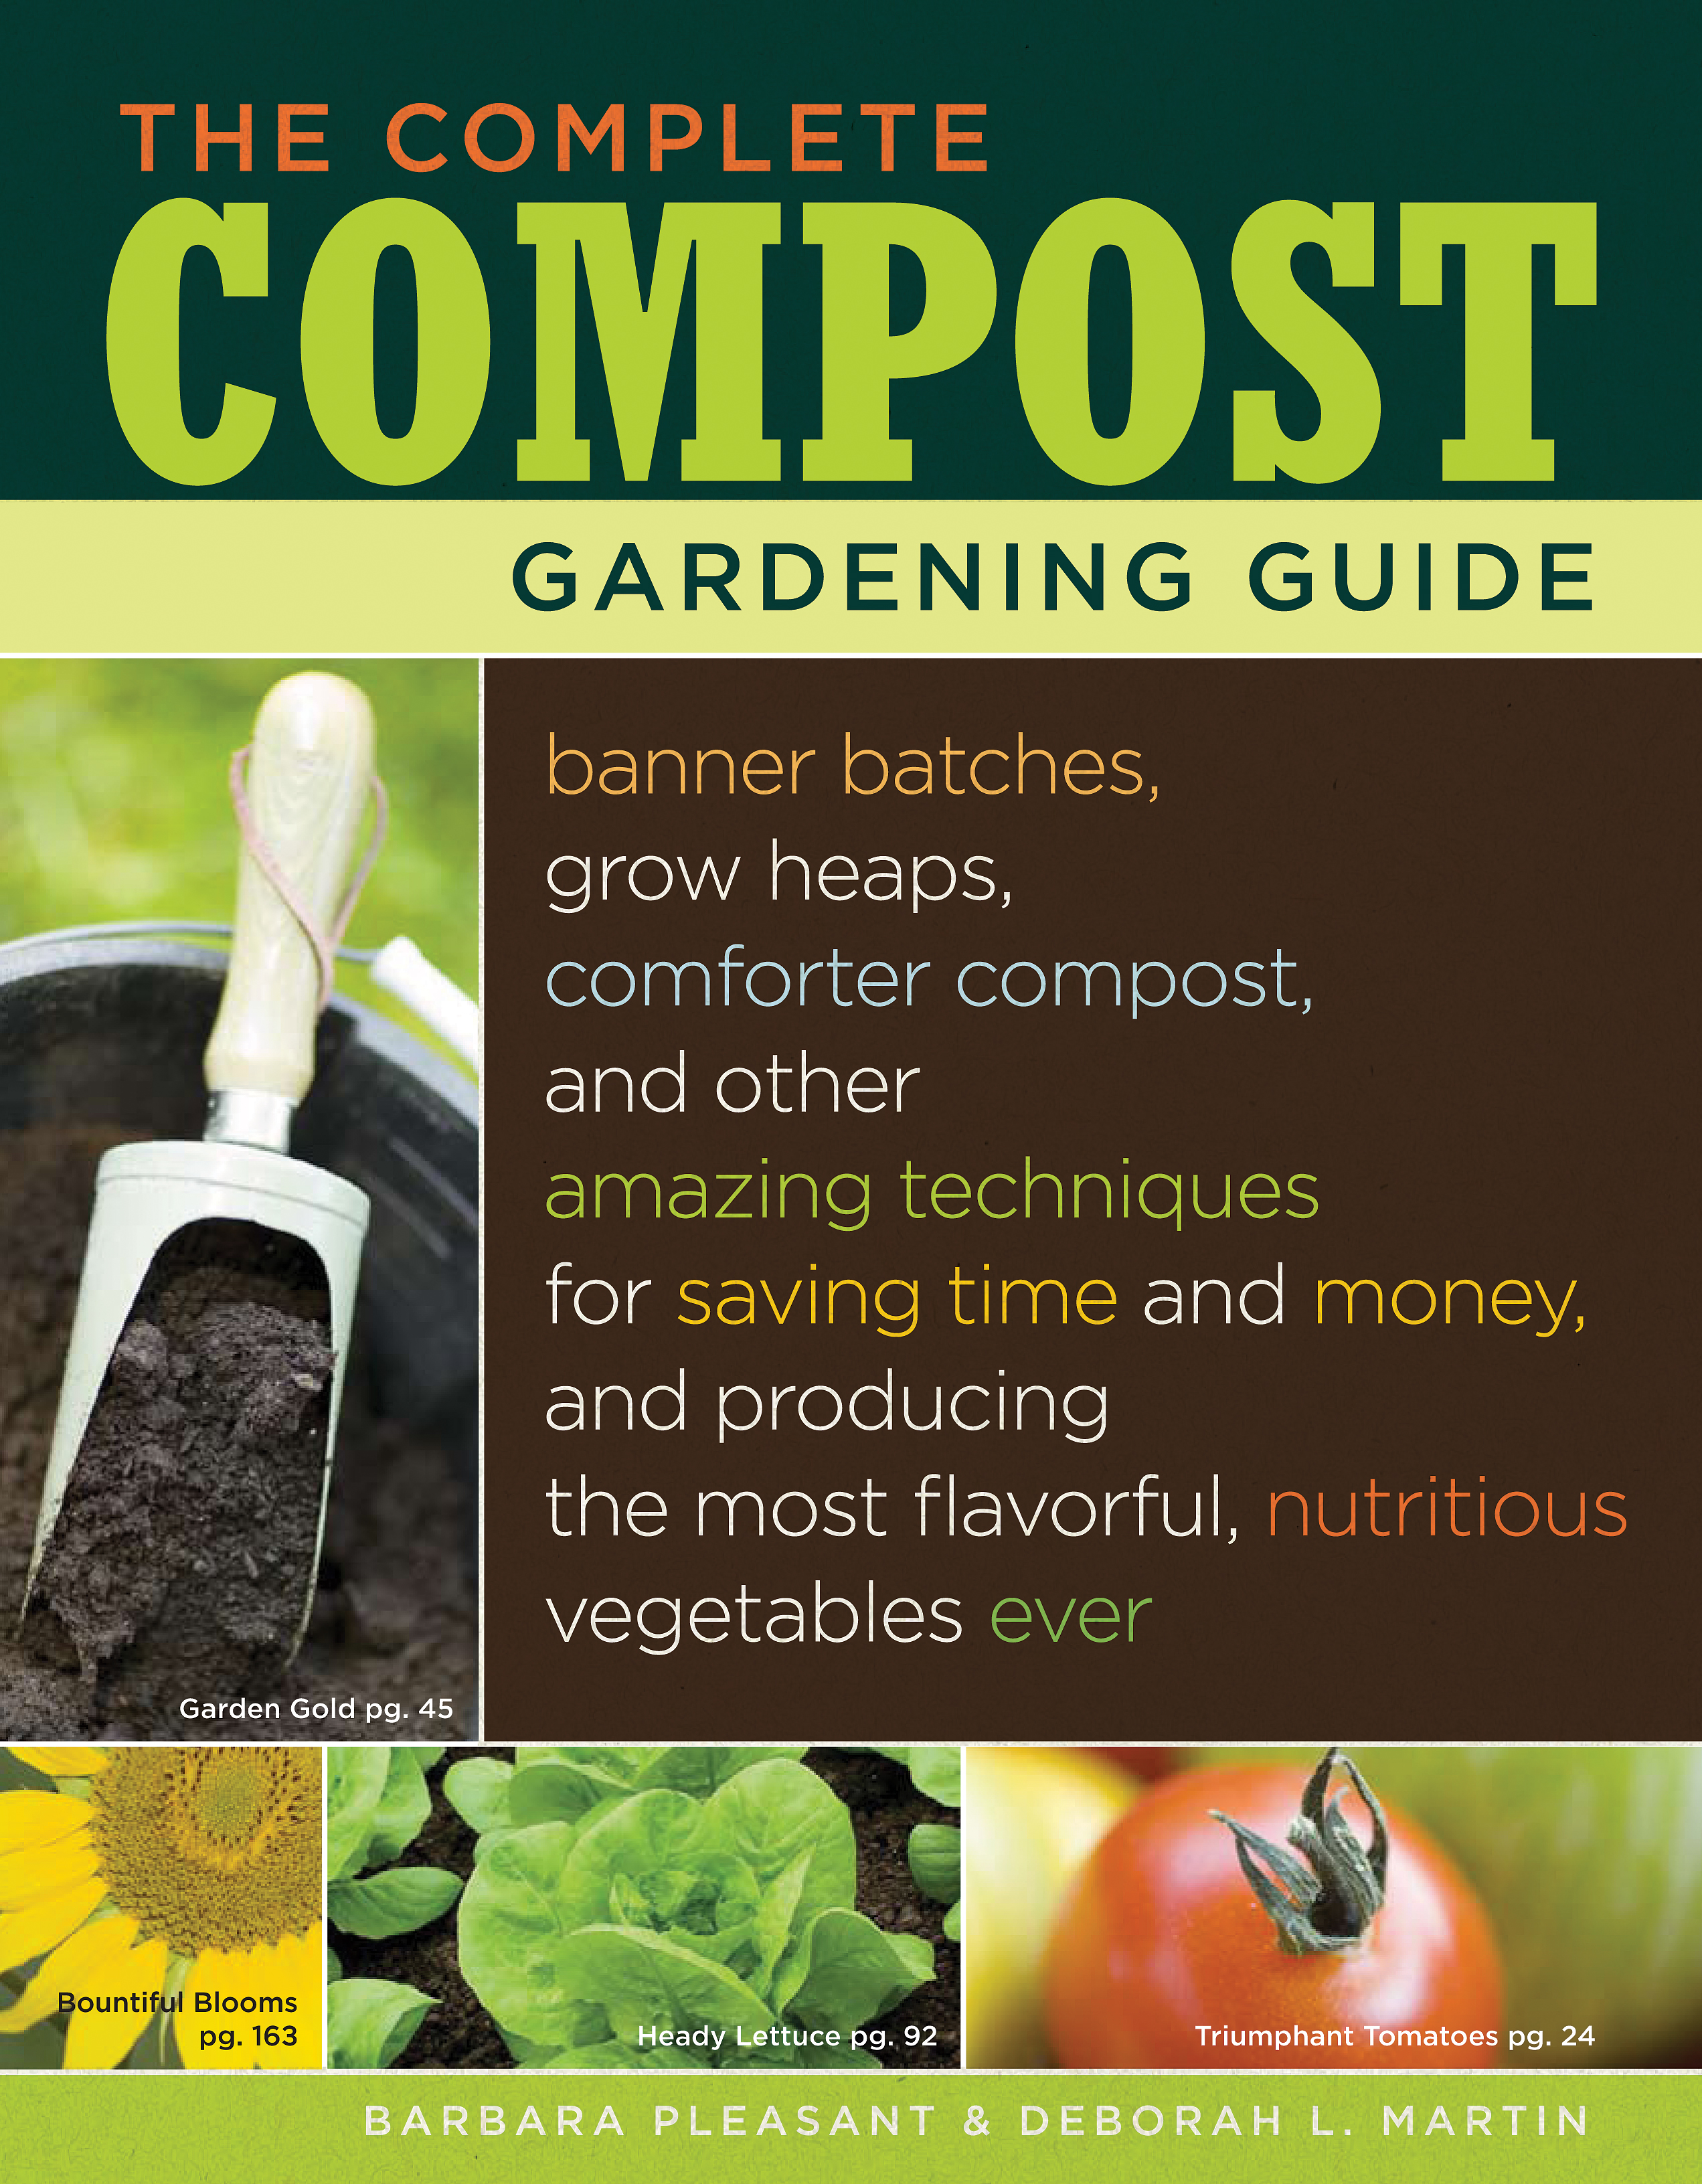 The Complete Compost Gardening Guide Banner batches, grow heaps, comforter compost, and other amazing techniques for saving time and money, and producing the most flavorful, nutritous vegetables ever.